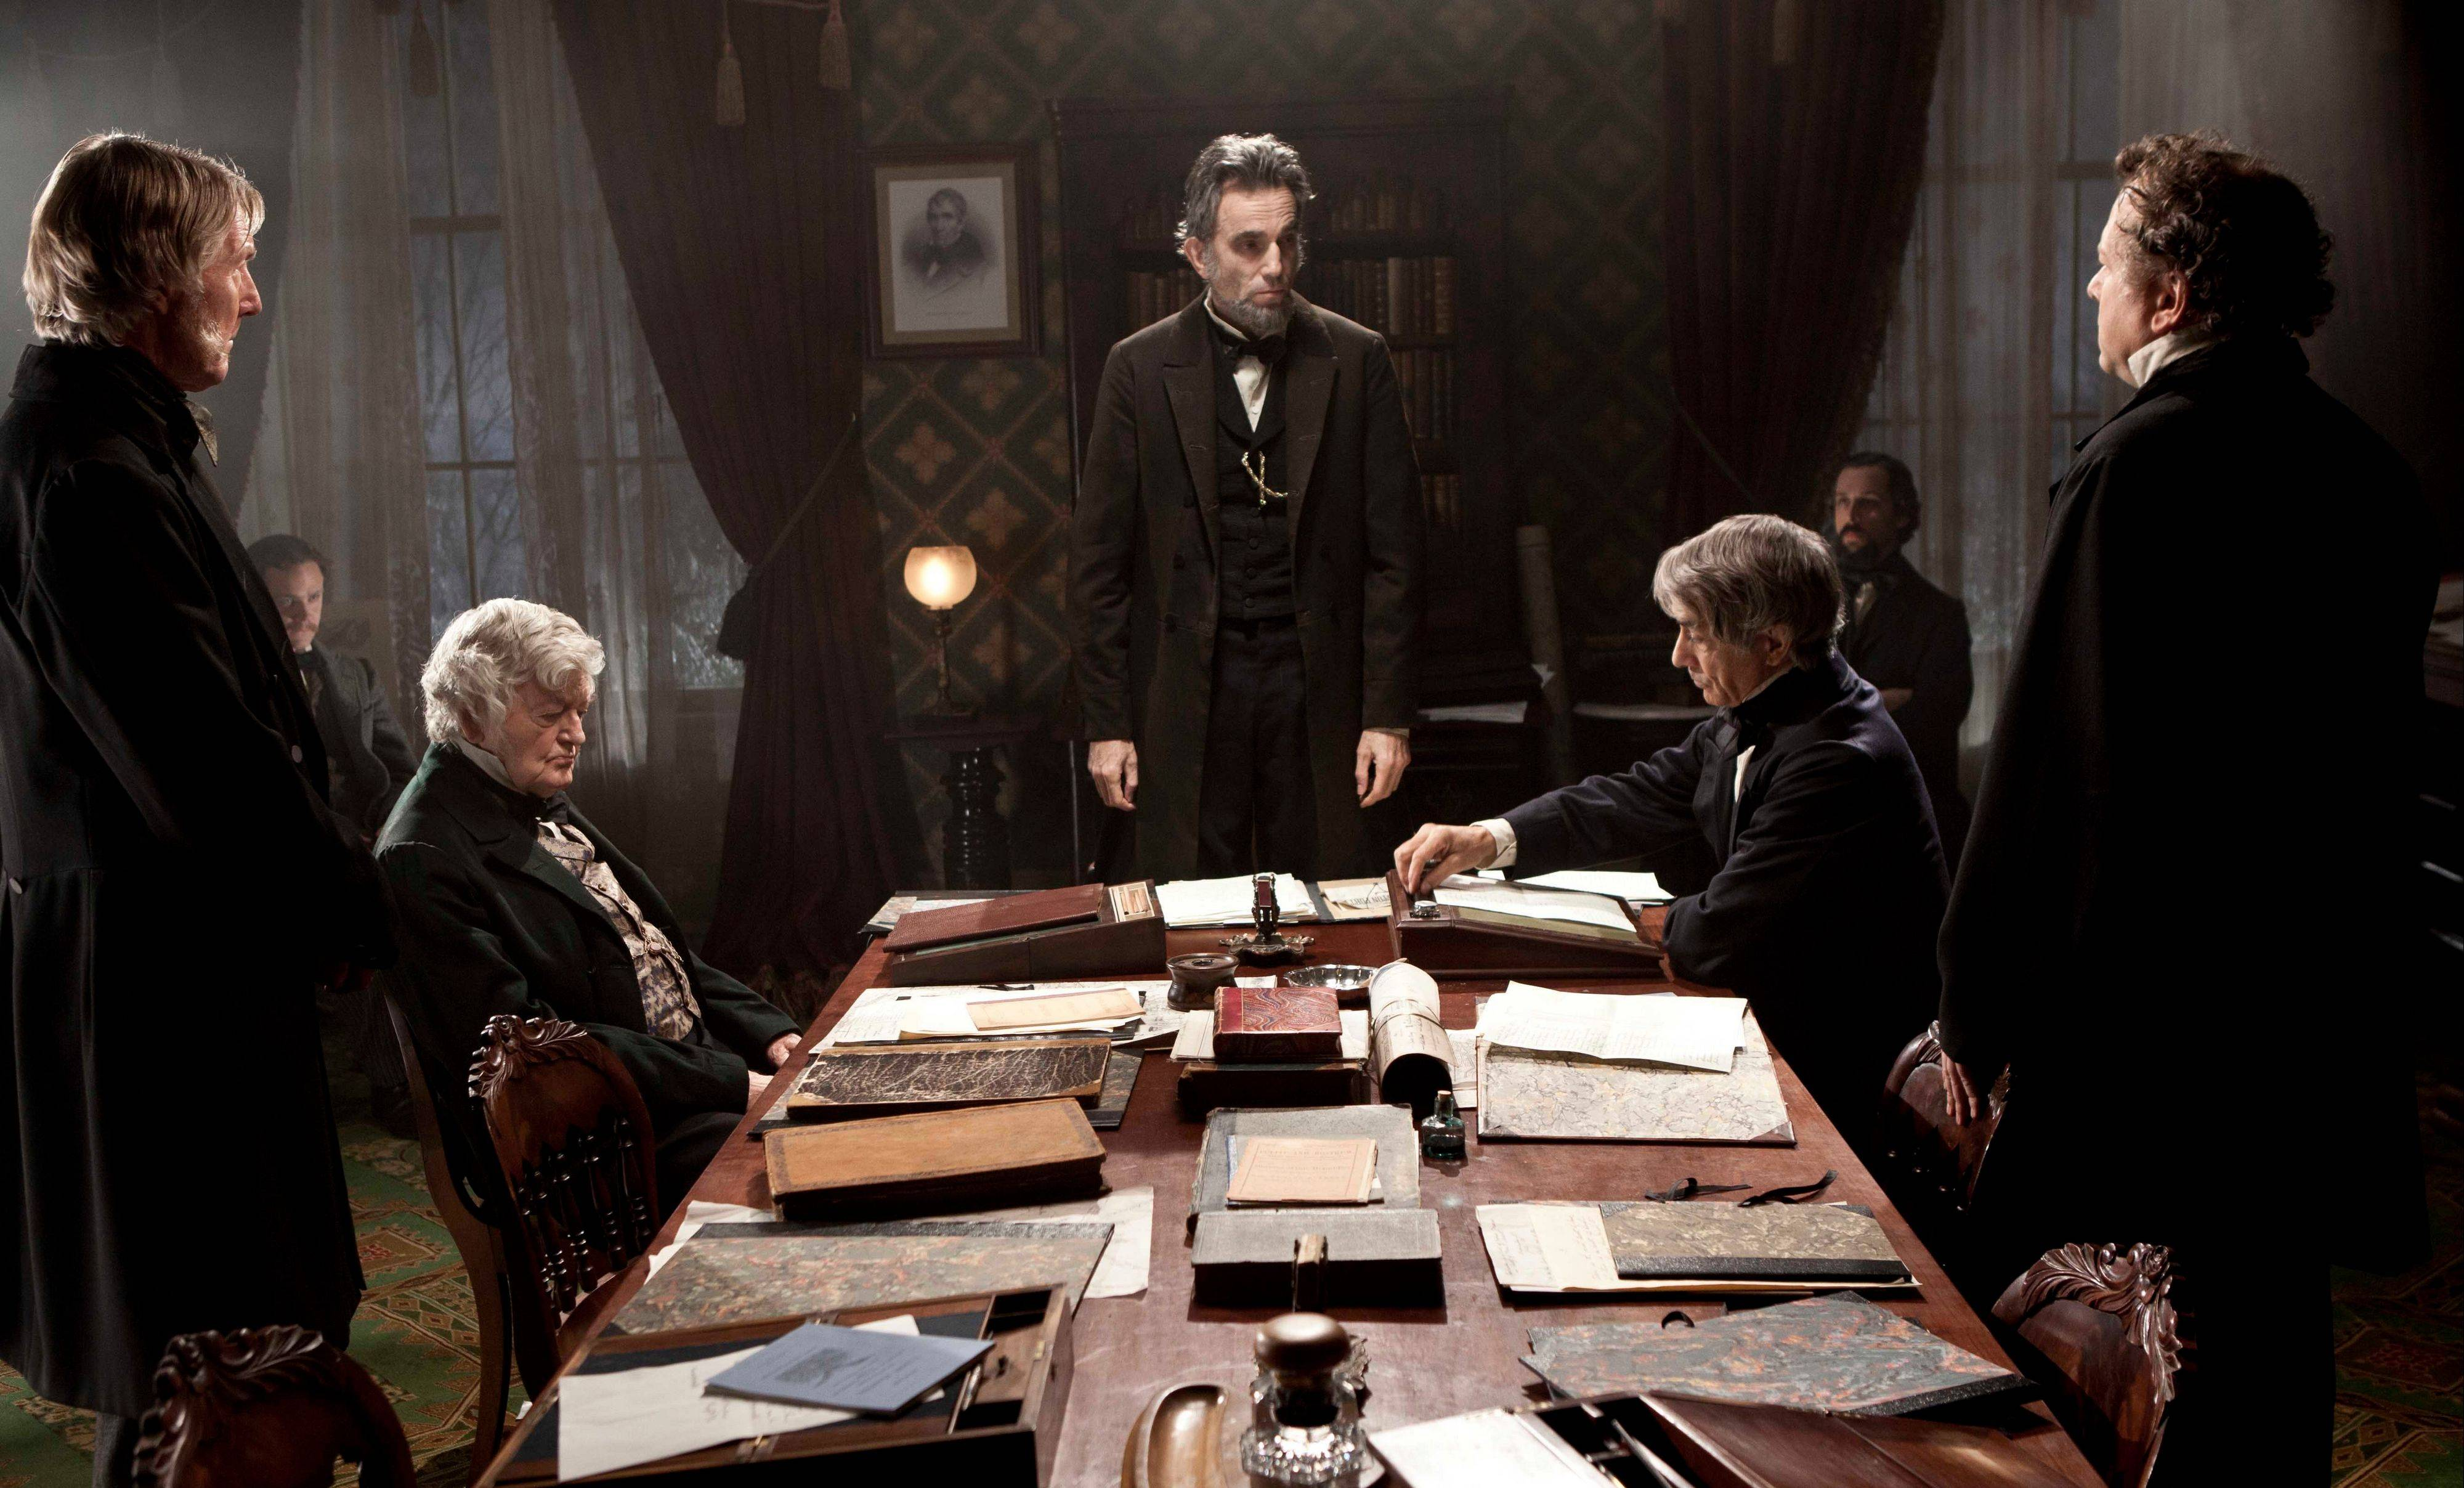 Spielberg, Day-Lewis unite for epic 'Lincoln' tale